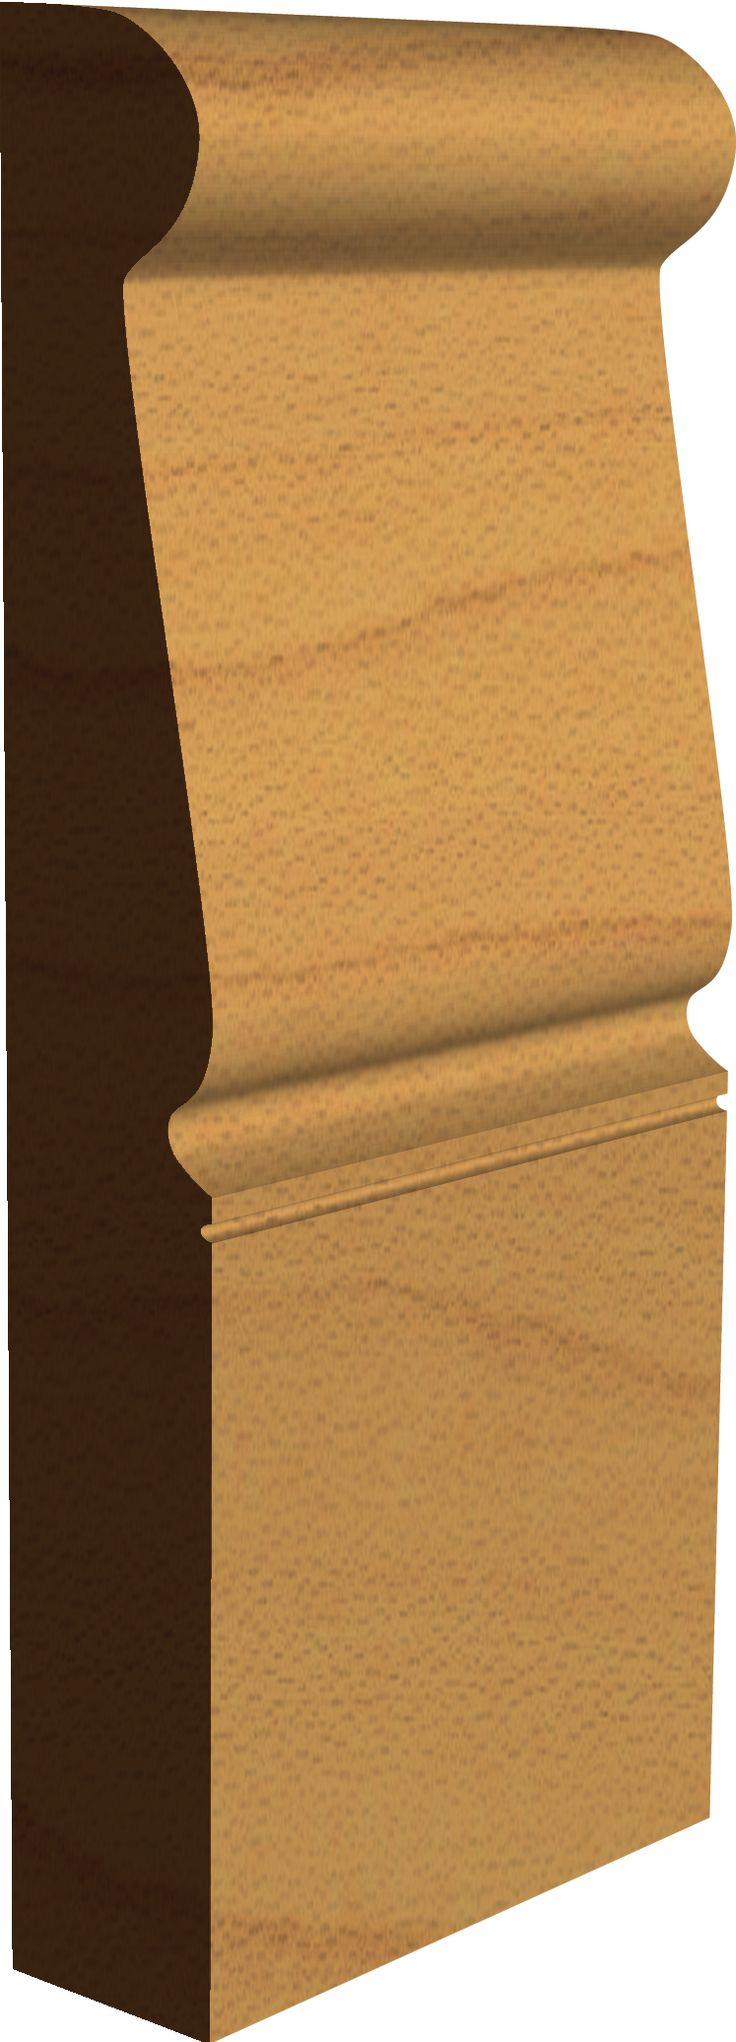 Georgian 'Brompton' Skirting Board Profile  Made by Period Mouldings  www.periodmouldings.co.uk